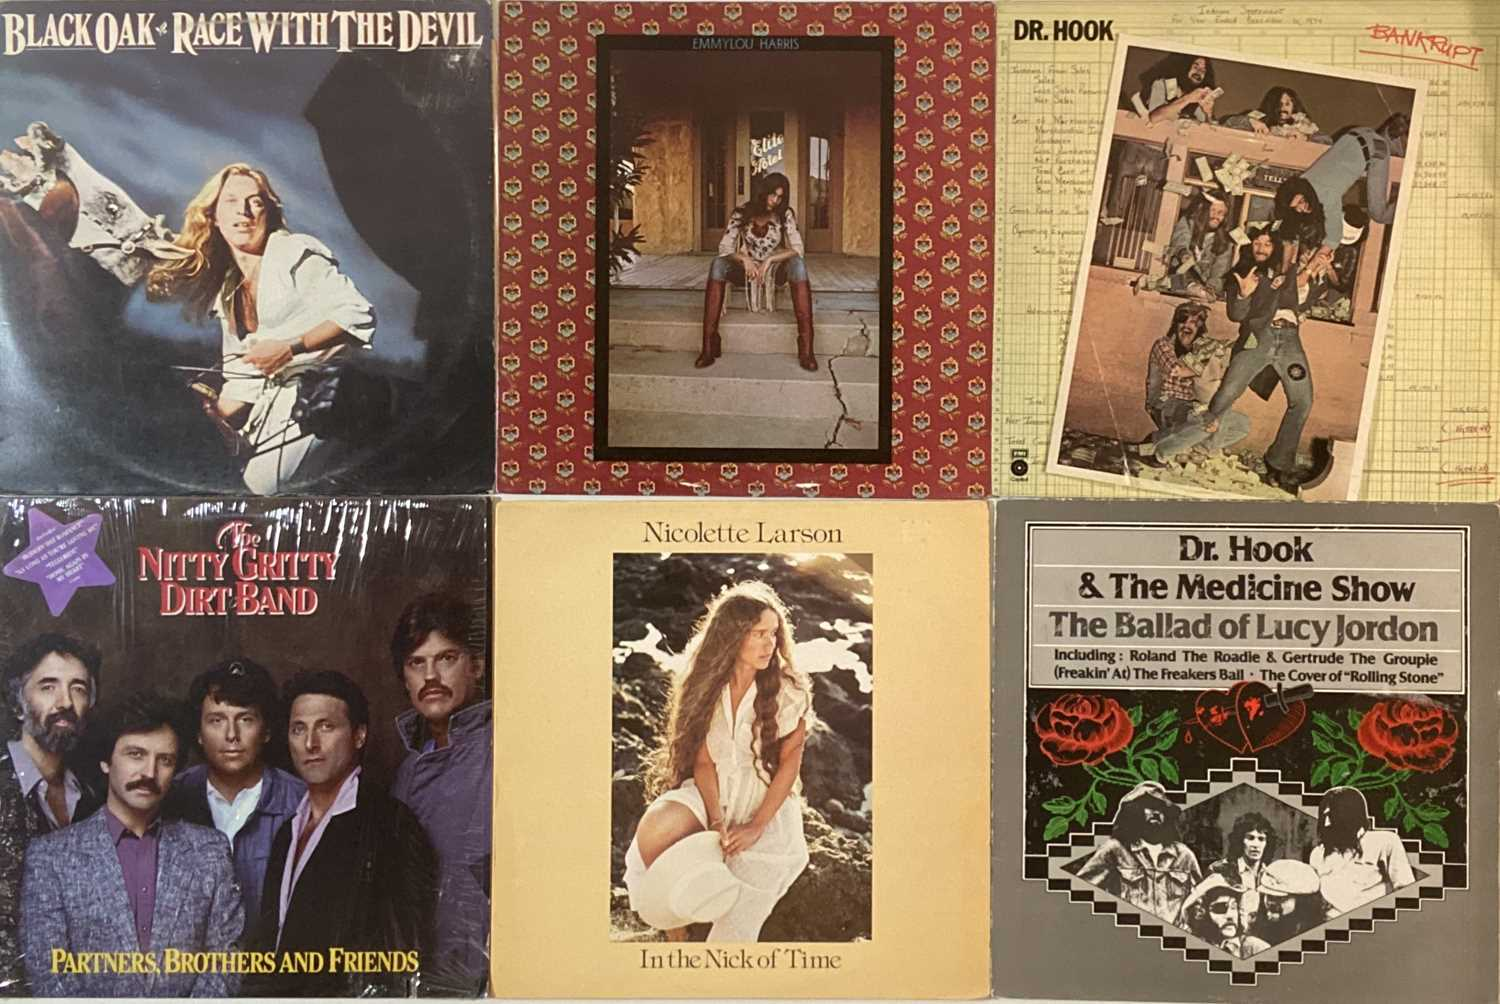 COUNTRY ROCK/R&R/AOR - LPs - Image 3 of 6